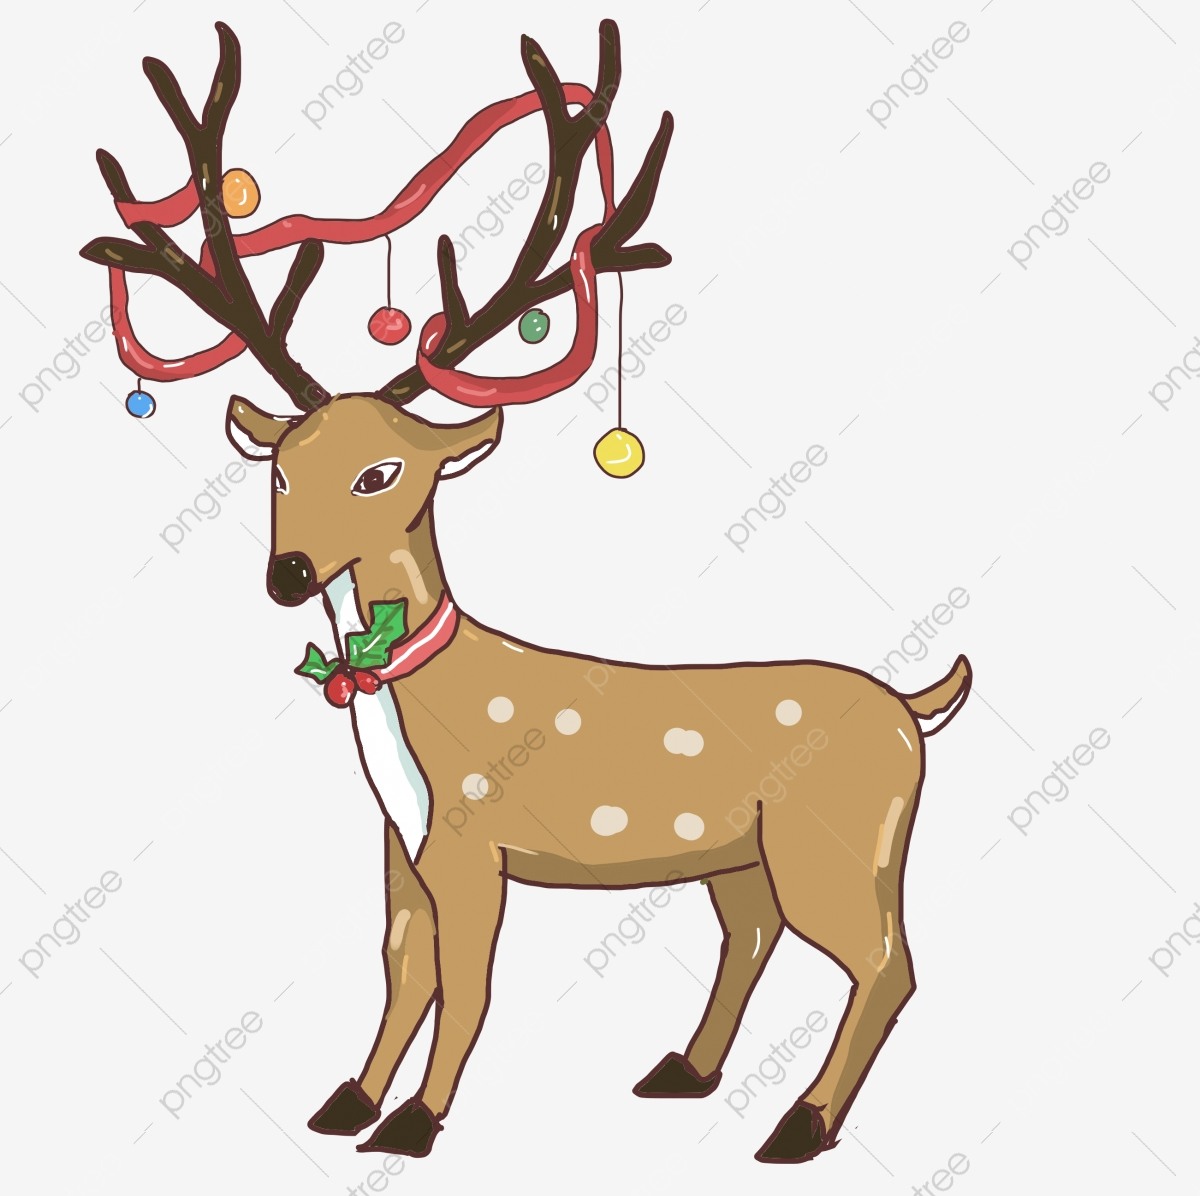 - Christmas Reindeer, Christmas, Reindeer, Cartoon PNG Transparent